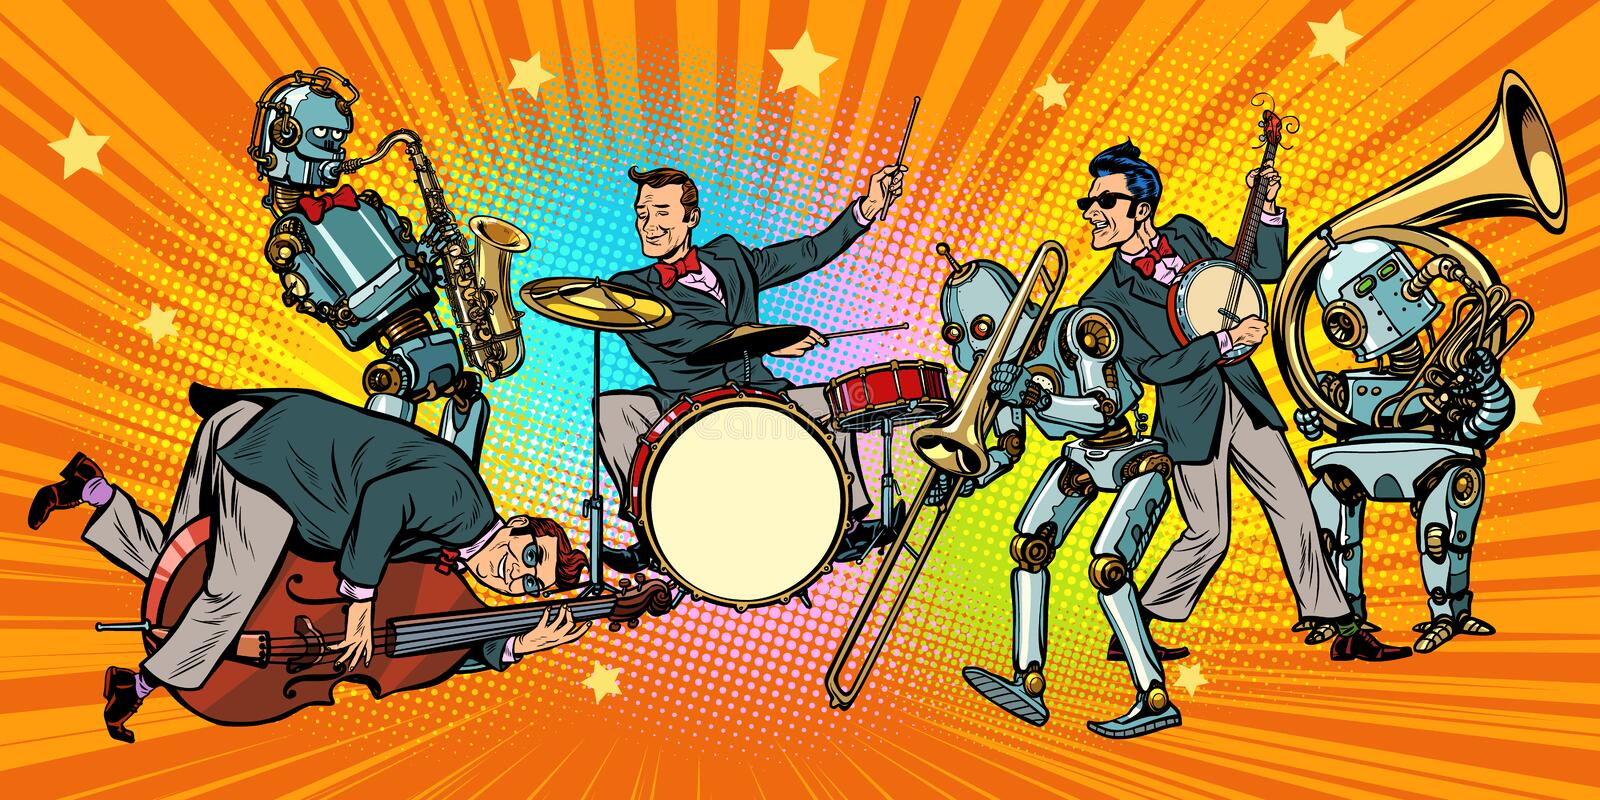 Jazz rock n roll band of humans and robots royalty free illustration